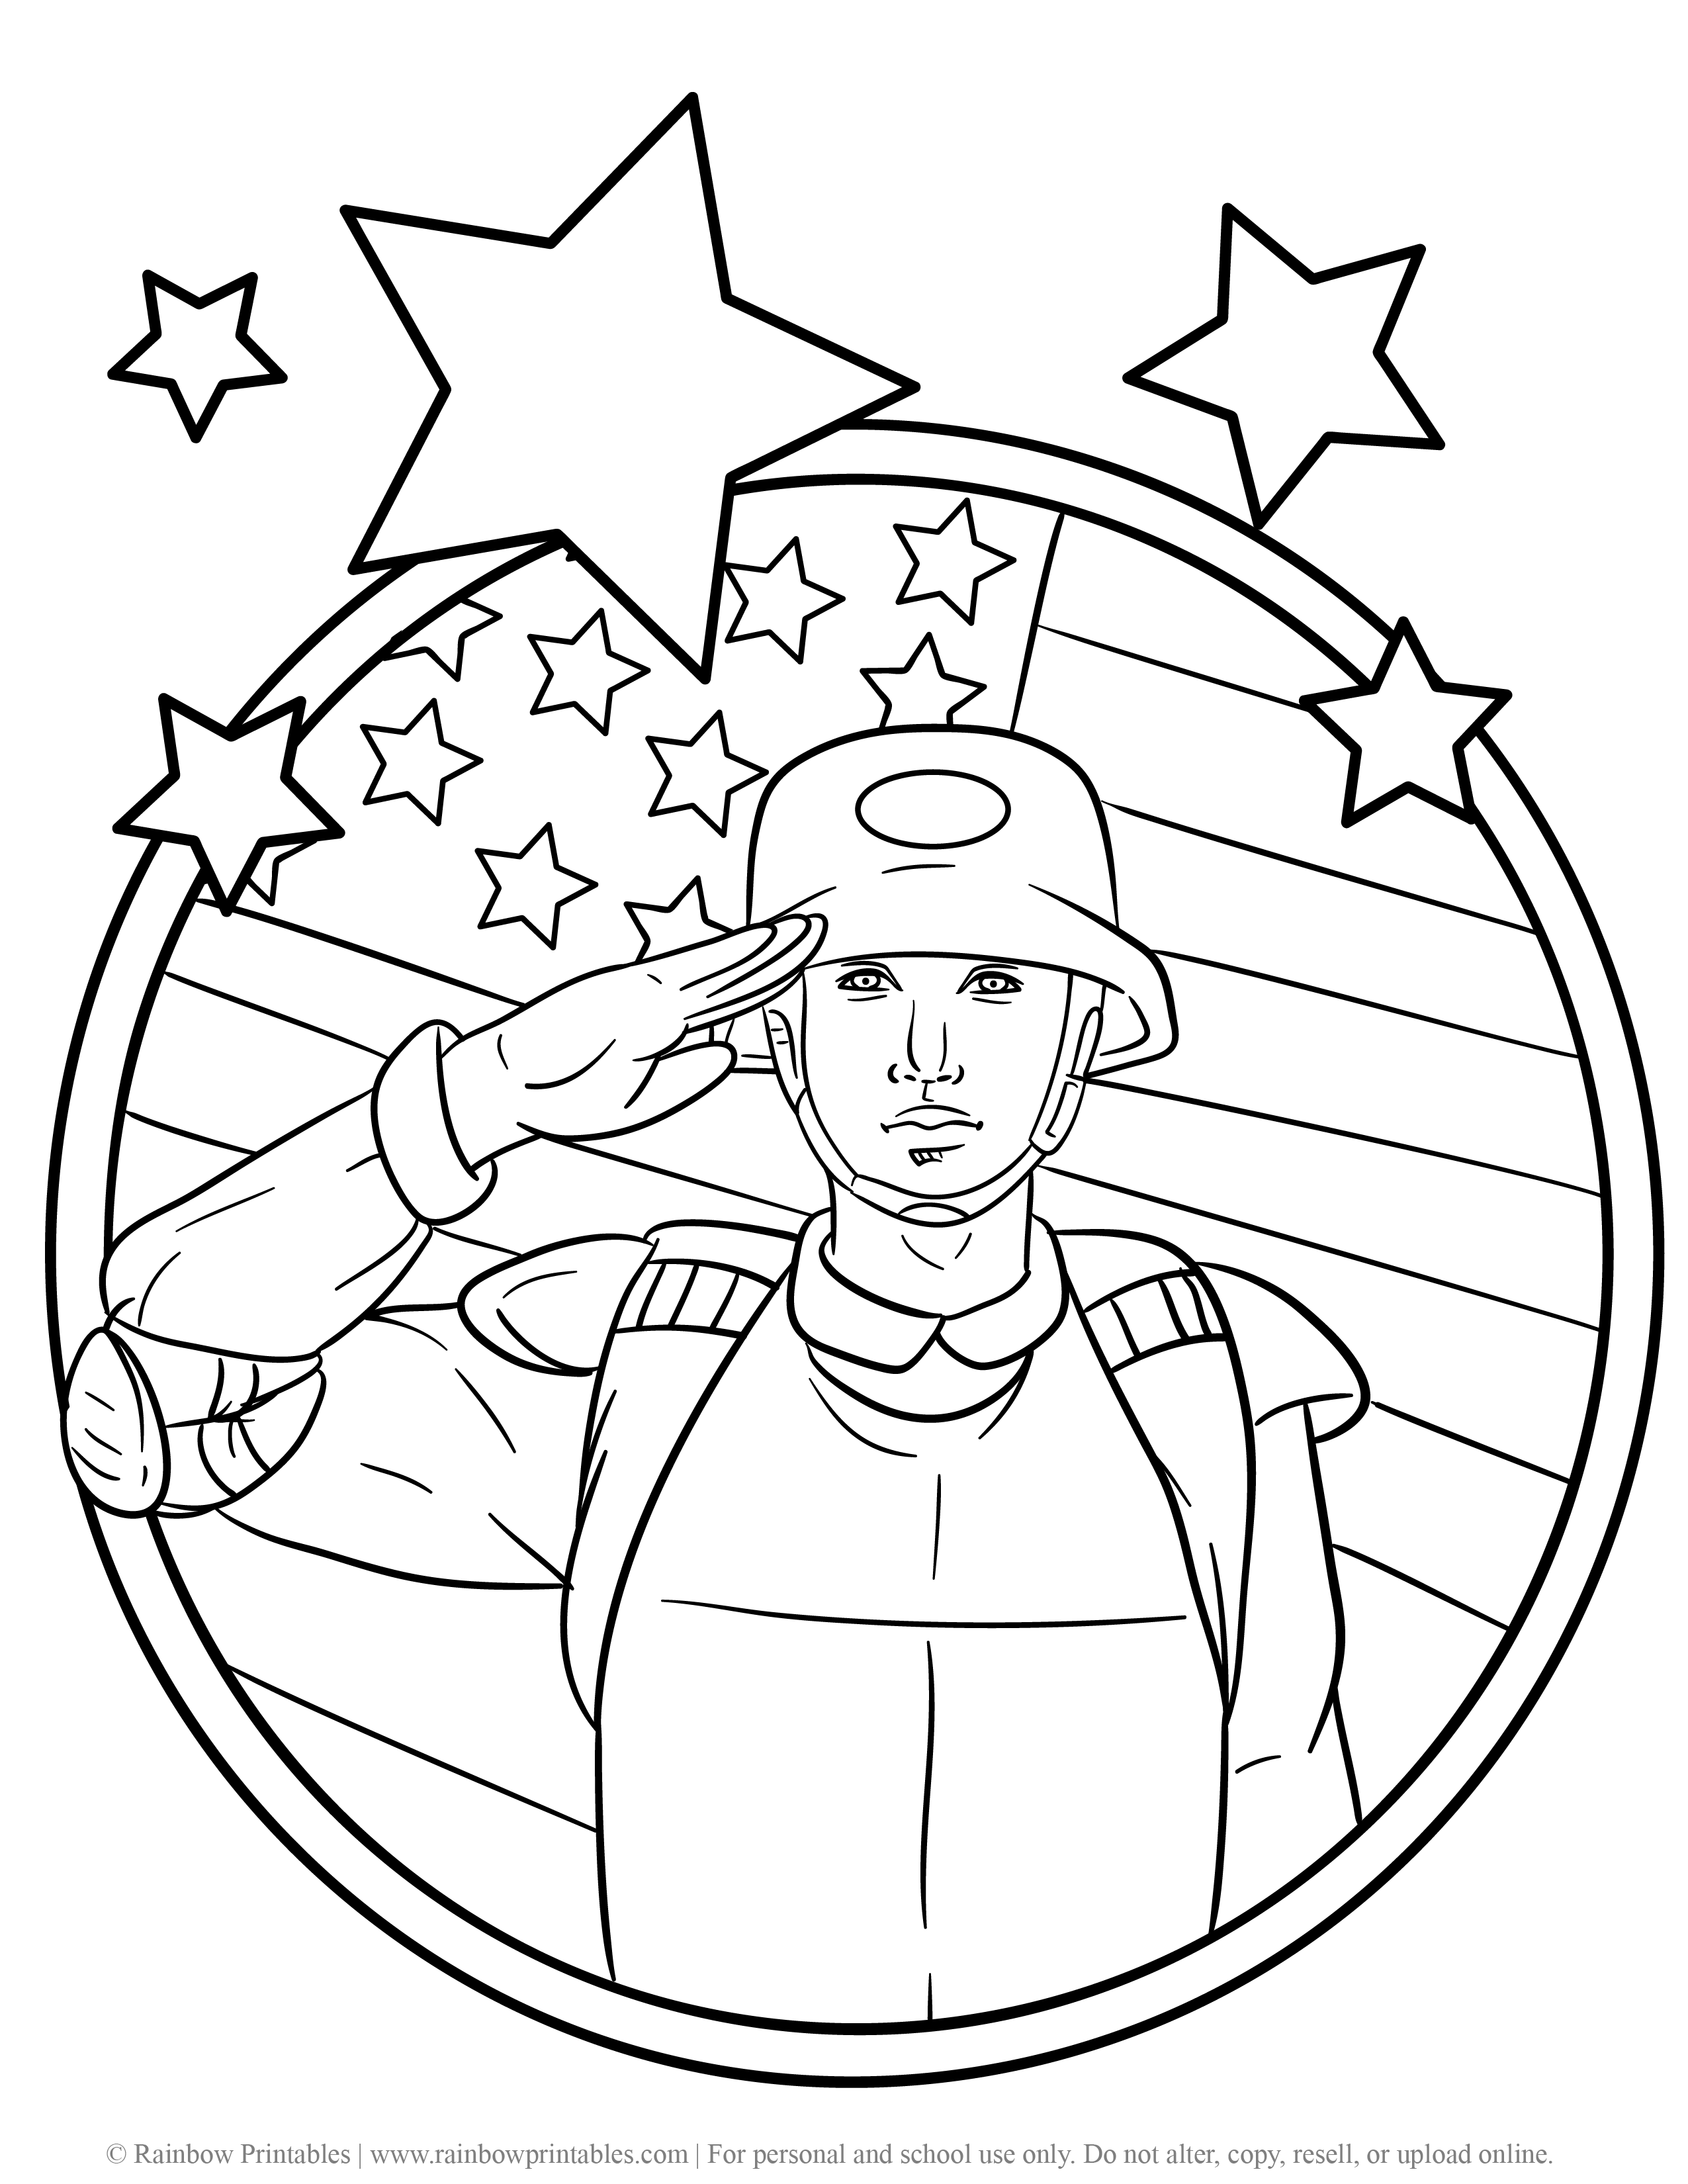 US American Soldier Army Navy Coloring Pages For Kids Patriotic July 4th Independence Day Simple Easy Salute Flag Stars